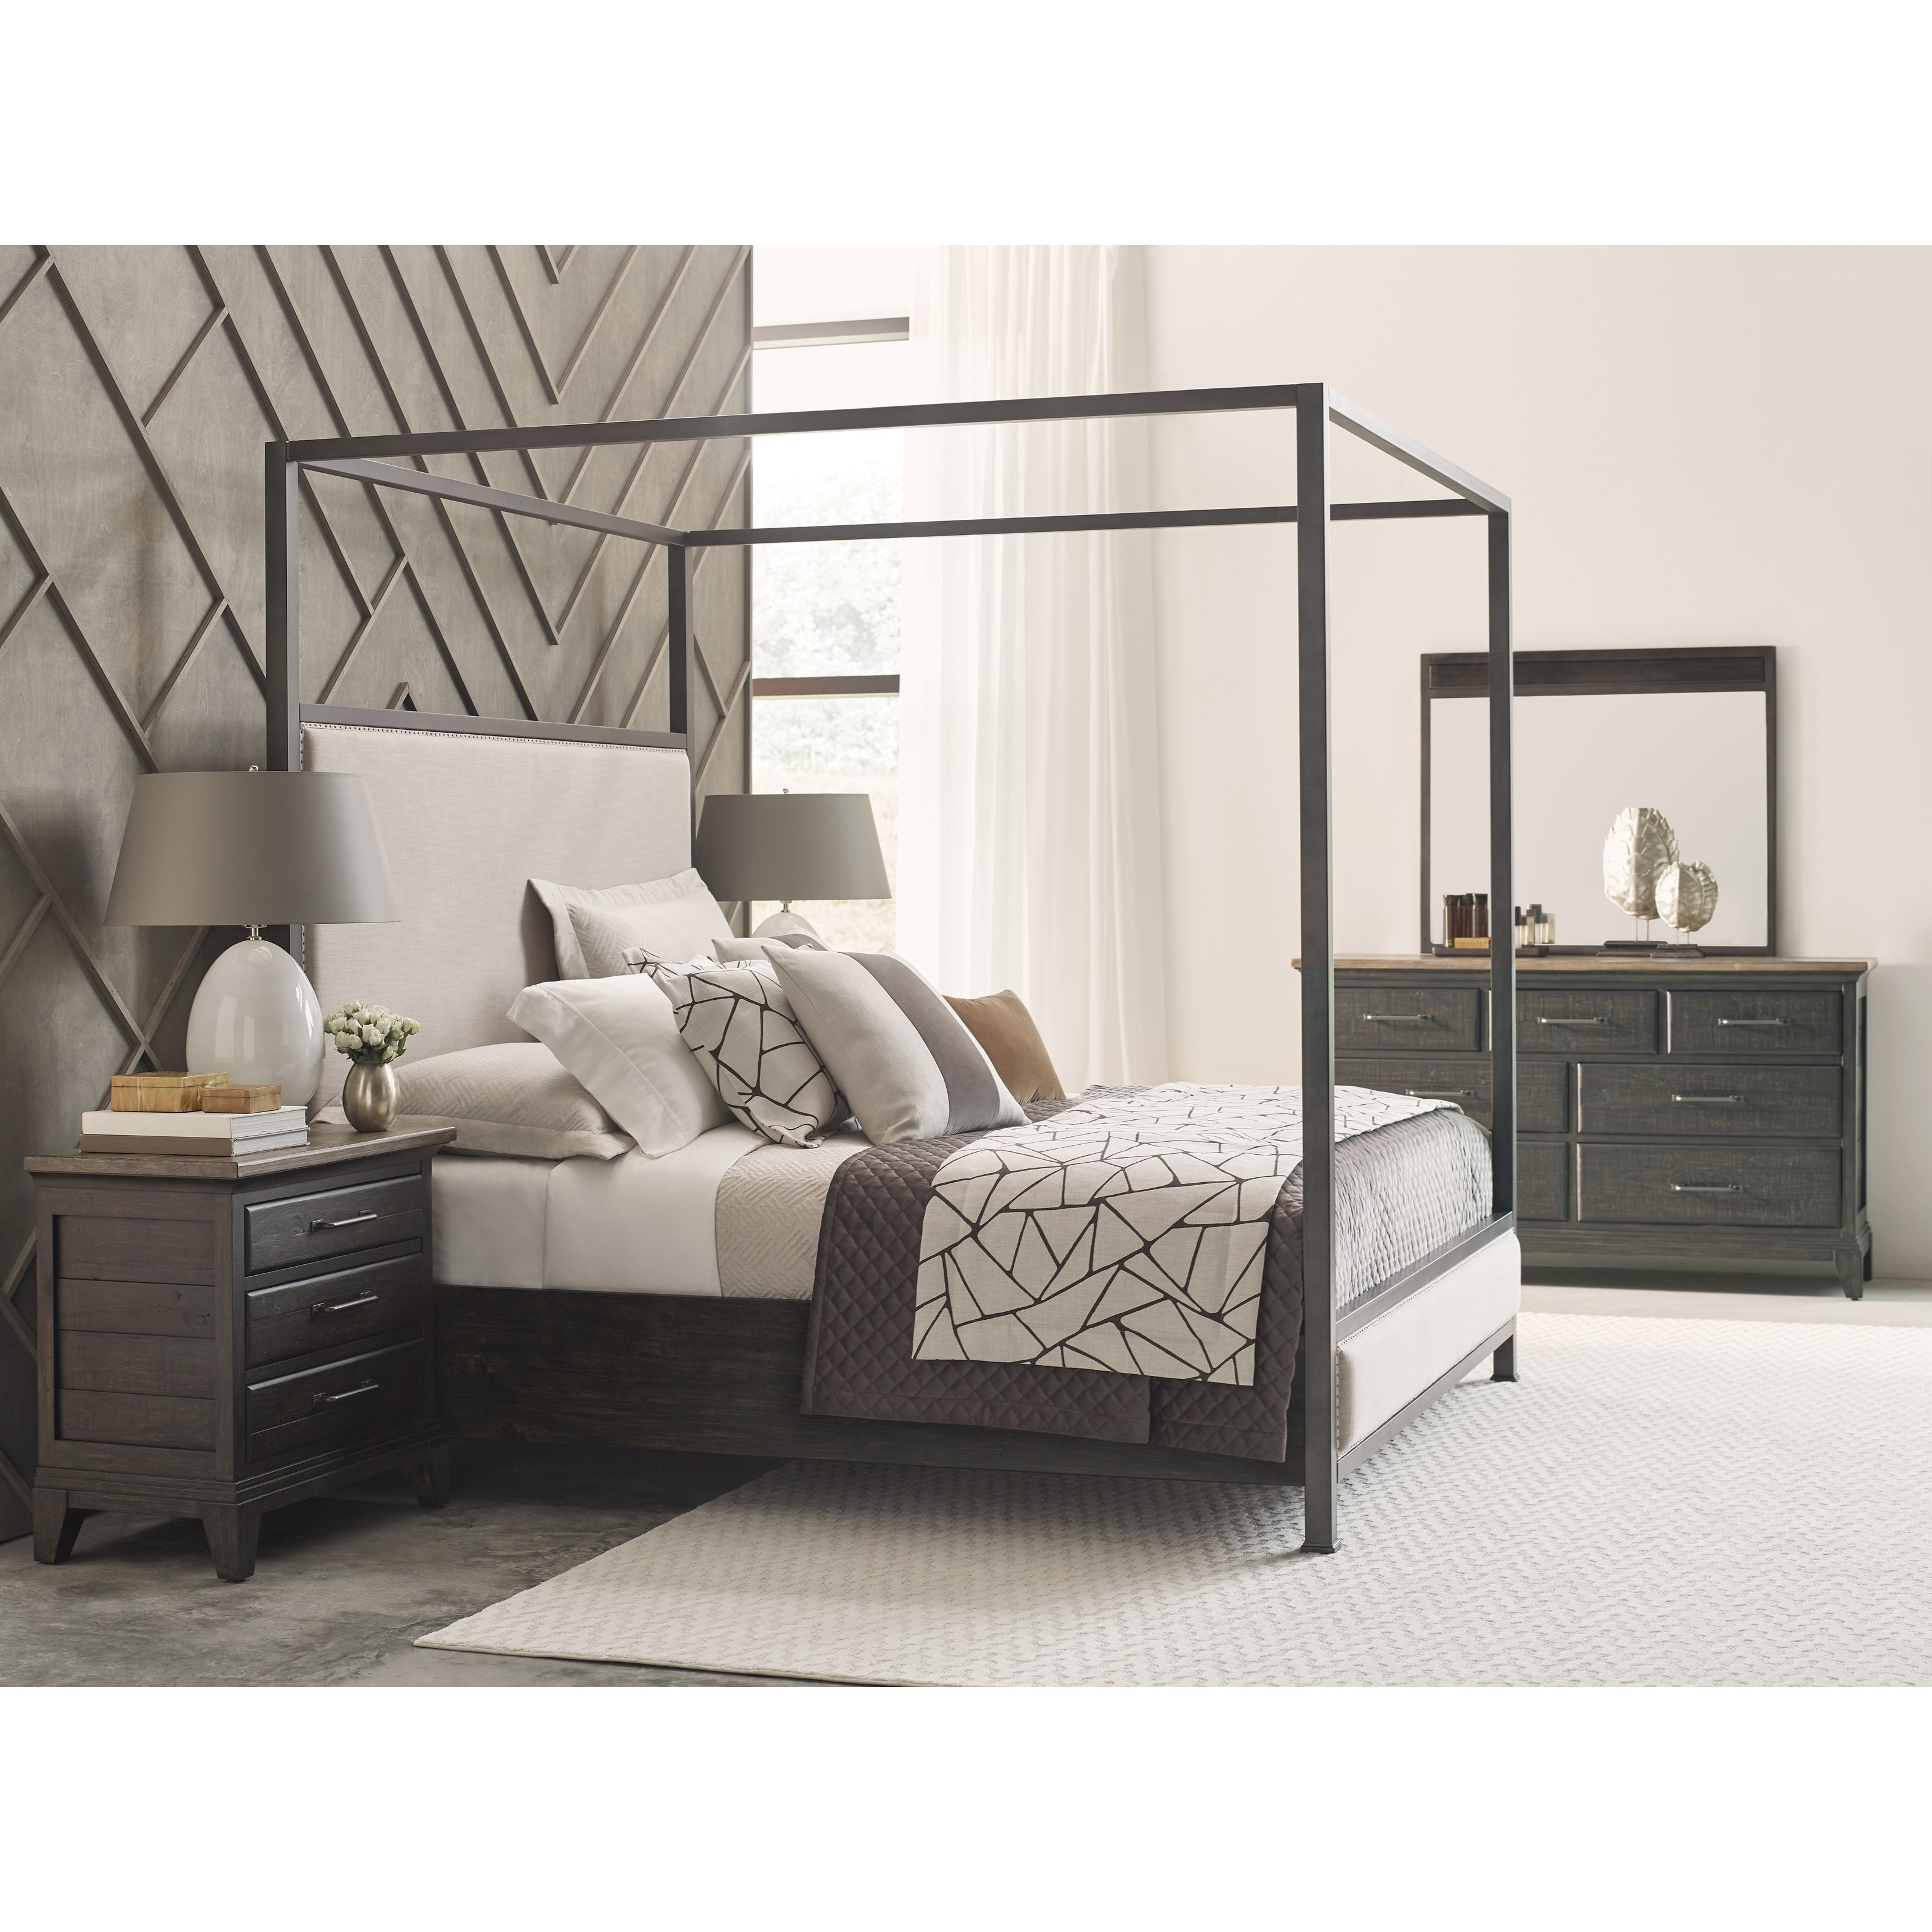 Plank Road California King Bedroom Group by Kincaid Furniture at Home Collections Furniture